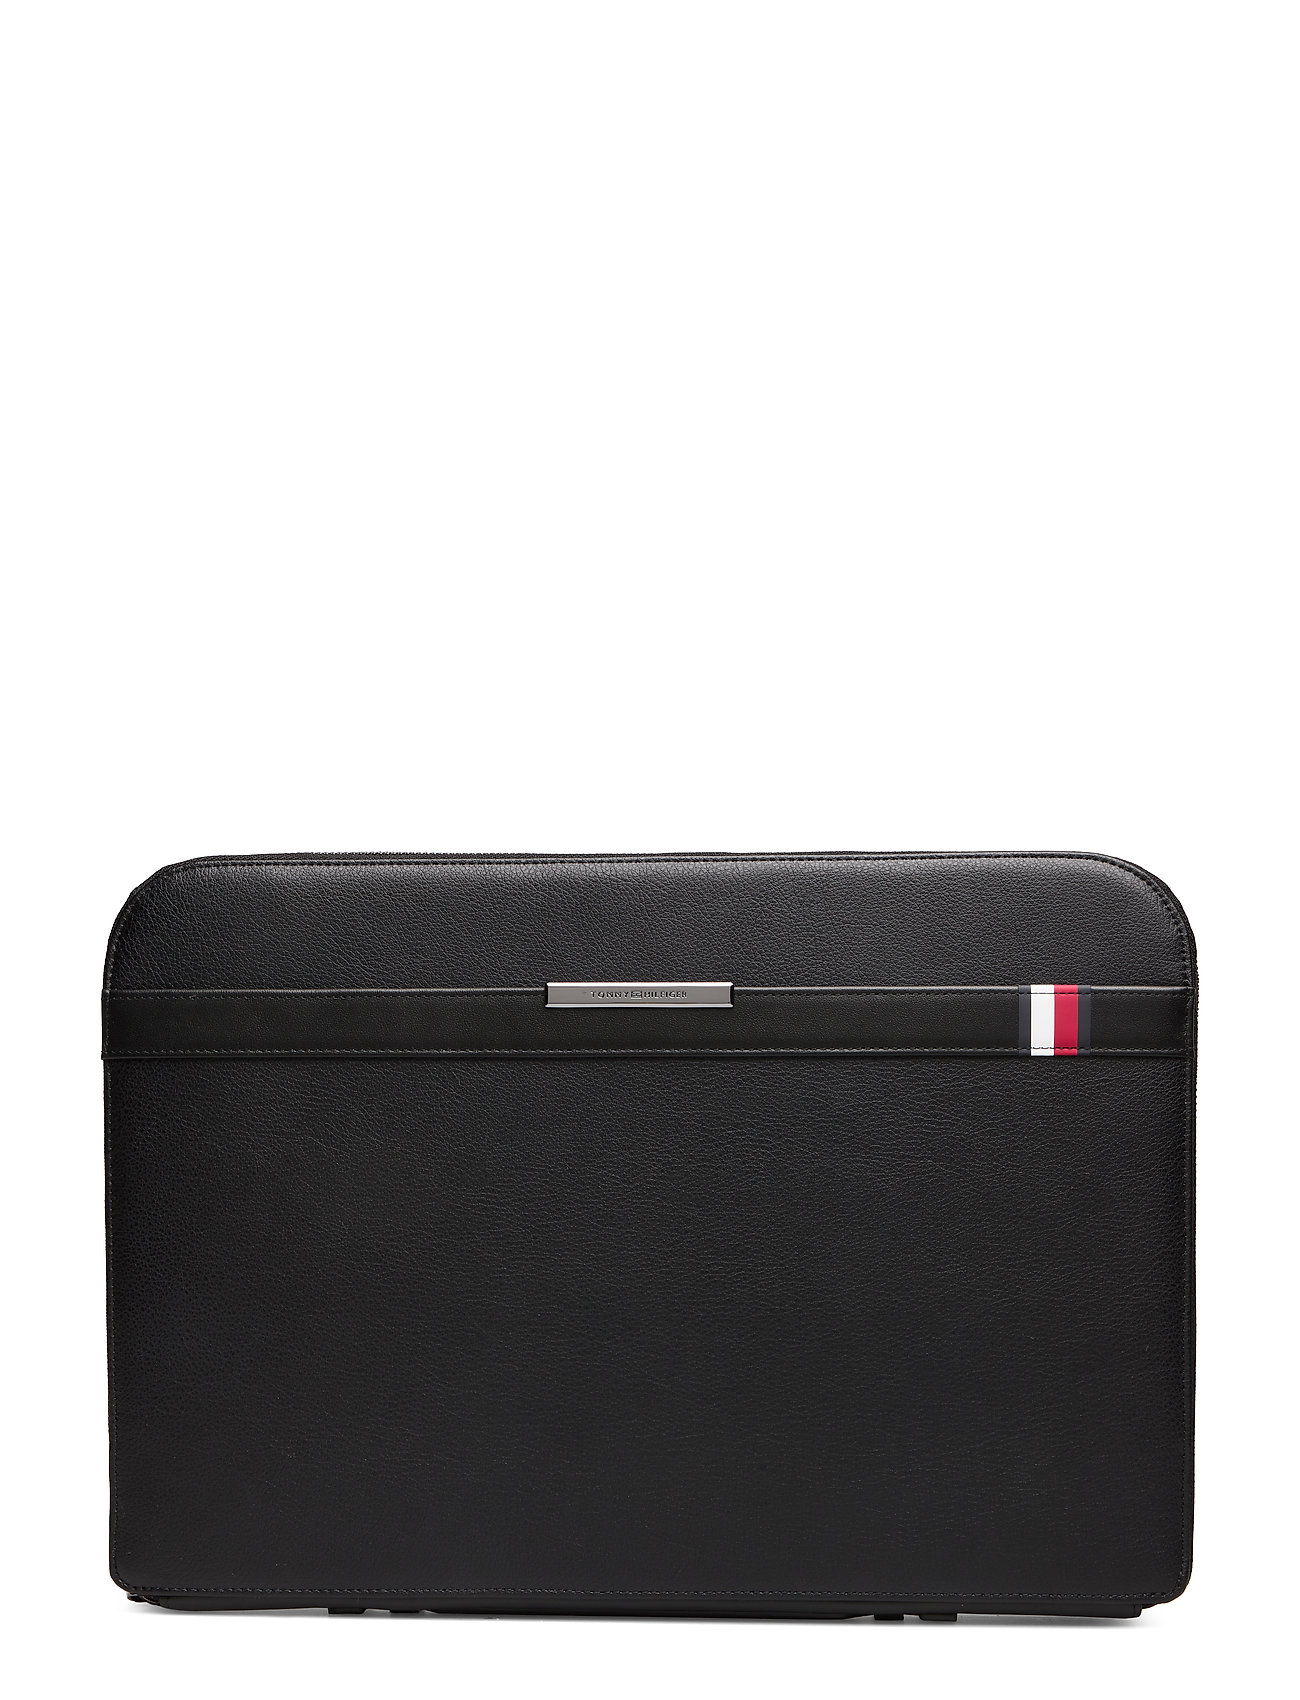 Tommy Hilfiger TH DOWNTOWN LAPTOP FOLIO LEATHER - BLACK